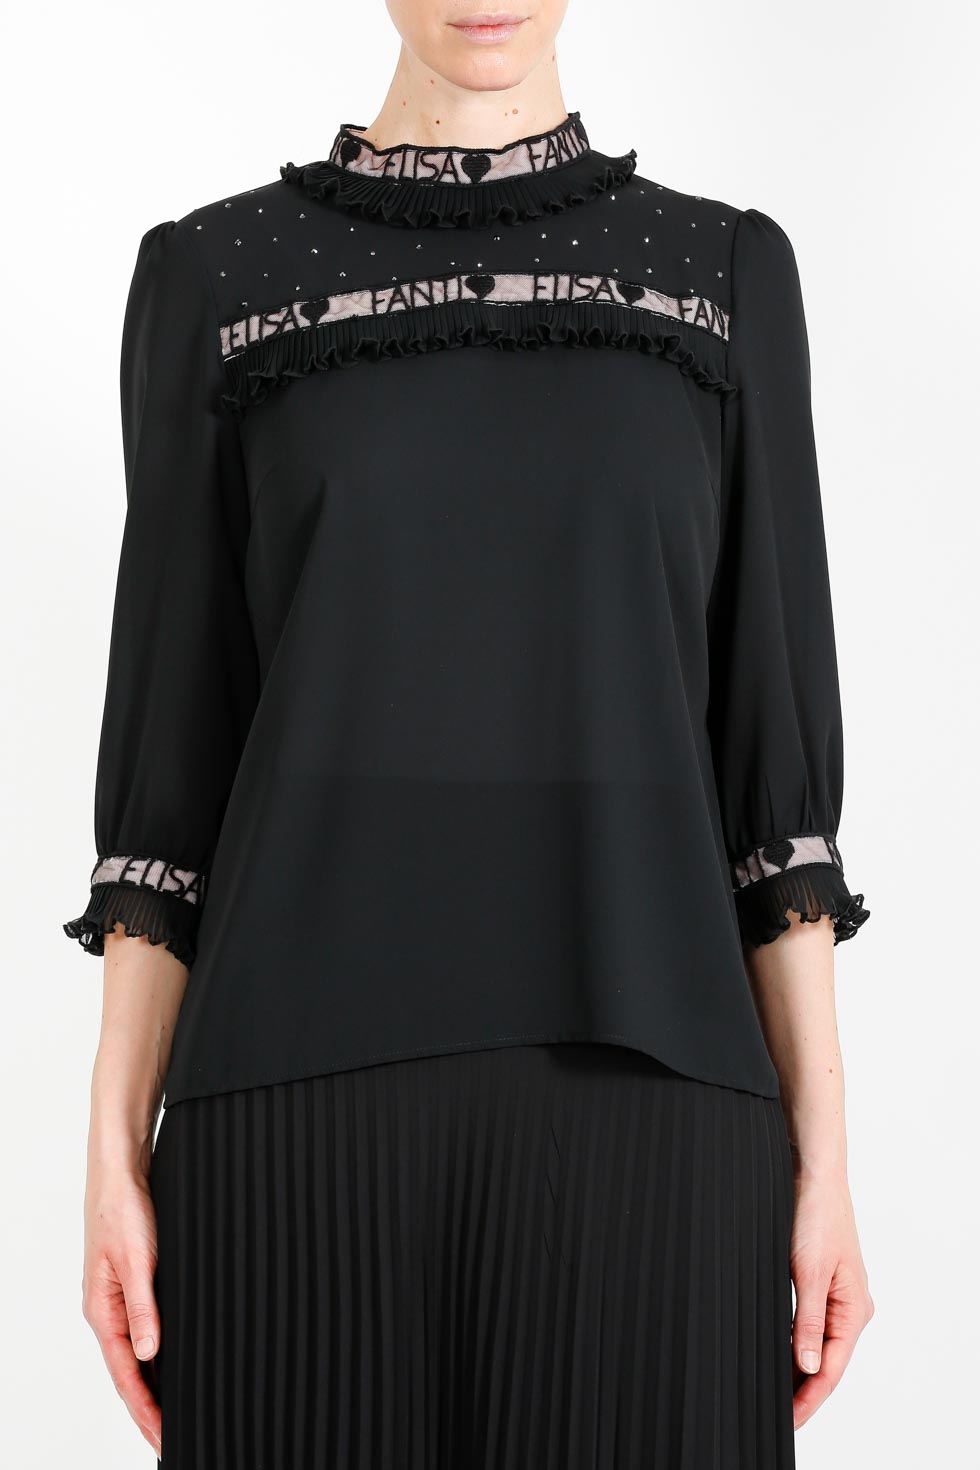 ELISA FANTI FW 2020/21 SERIE EFRomanticFlower BLUSA IN GEORGETTE E STRASS